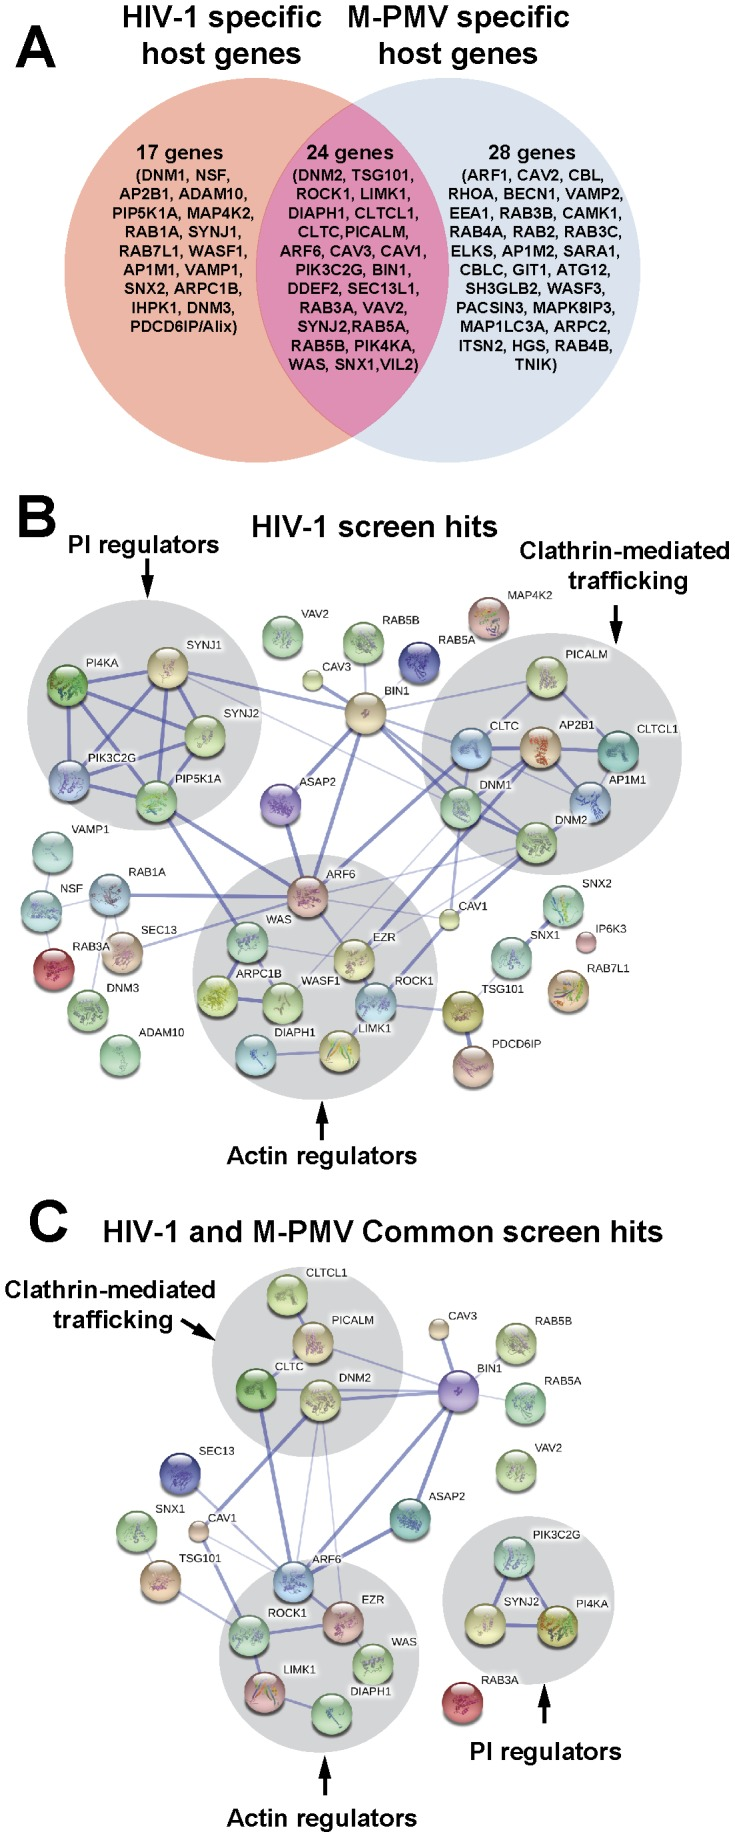 Bioinformatics analyses of siRNA screen hits. (A) Venn diagram of siRNA hits identified in this work. We identified 41 host proteins in HIV screen and 52 host proteins in M-PMV screen. There were 24 host proteins that were common for both HIV-1 and M-PMV. (B) Protein interaction network of HIV1 screen hits (Stronger associations are represented by thicker lines). A map of the interactions of our HIV screen hits was built by using STRING 9.05 with a required medium confidence score (0.400). Analysis of the network revealed clusters of interrelated factors involved in three distinct pathways (highlighted in grey circle): cellular actin cytoskeletal regulation pathways, clathrin-mediated trafficking factors and regulators of phosphoinositide metabolism. (C) Protein interaction network of the common screen hits for both HIV-1 and M-PMV (Stronger associations are represented by thicker lines). The interactions map of 24 host proteins that were common for both HIV-1 and M-PMV was built by using STRING 9.05 with a required medium confidence score (0.400). Factors involved in clathrin-mediated trafficking, regulation of the actin cytoskeleton, and phosphoinositide metabolism (highlighted in grey circle) were identified to affect both HIV-1 and M-PMV assembly or release.